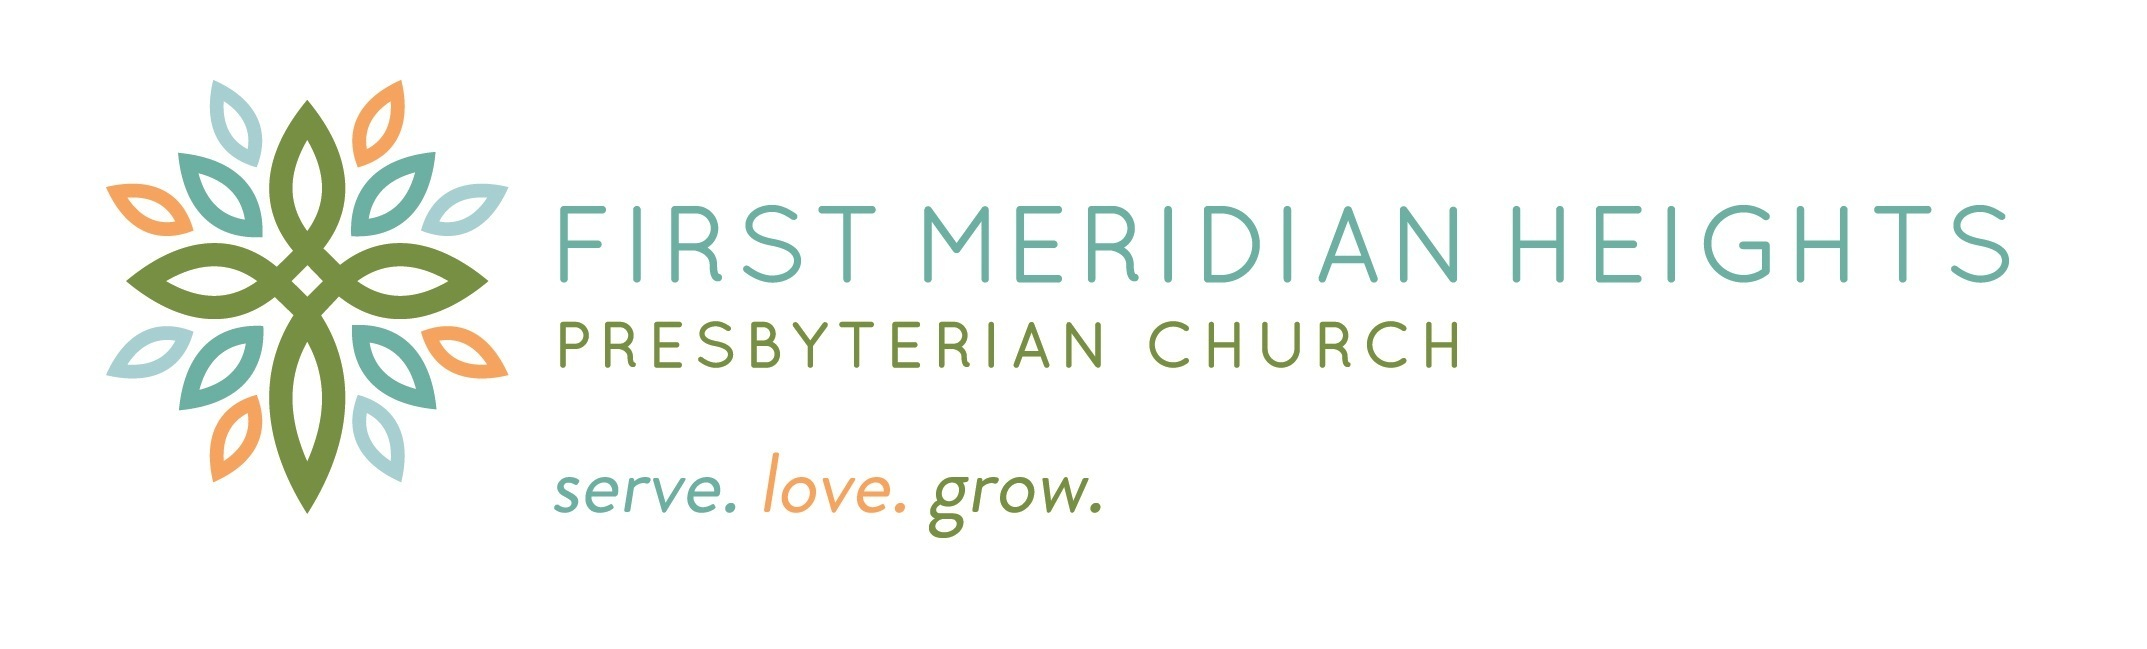 First Meridian Heights Presbyterian Church